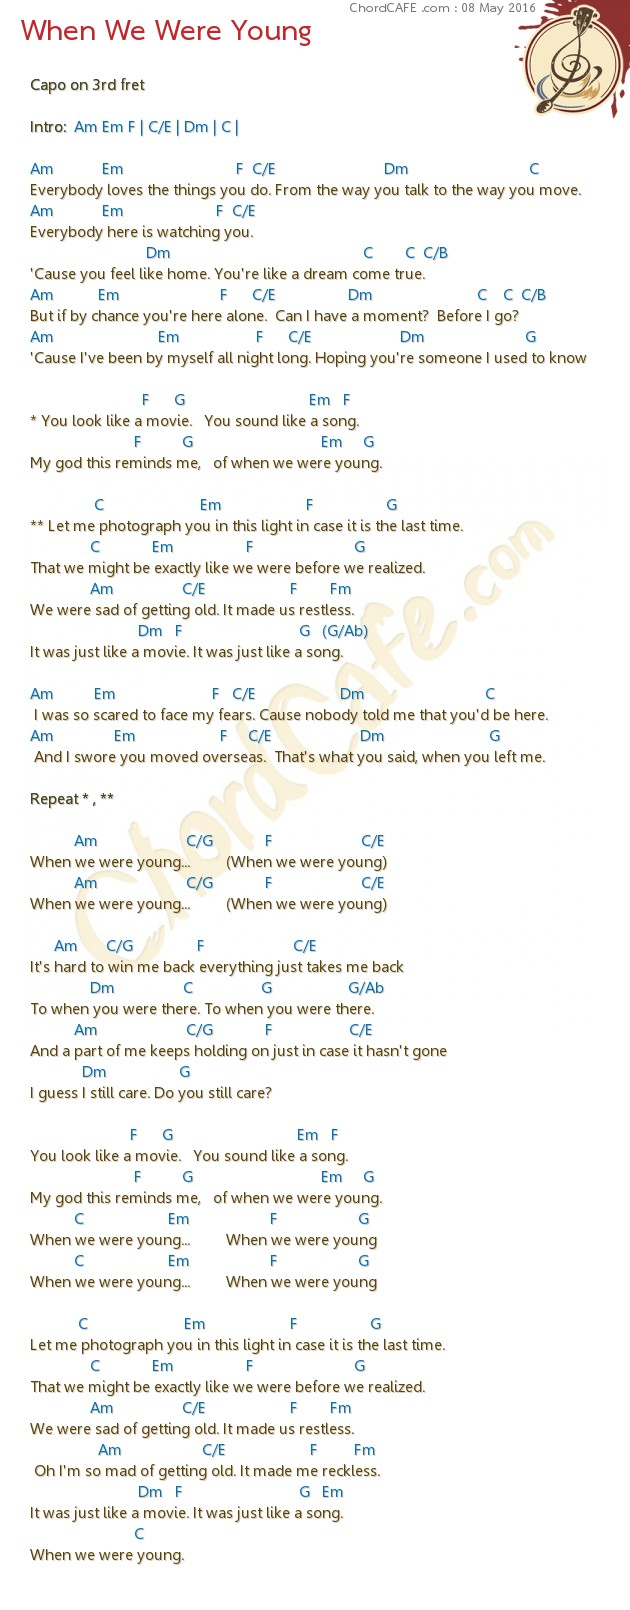 When We Were Young Chords When We Were Young Download Chordcafe